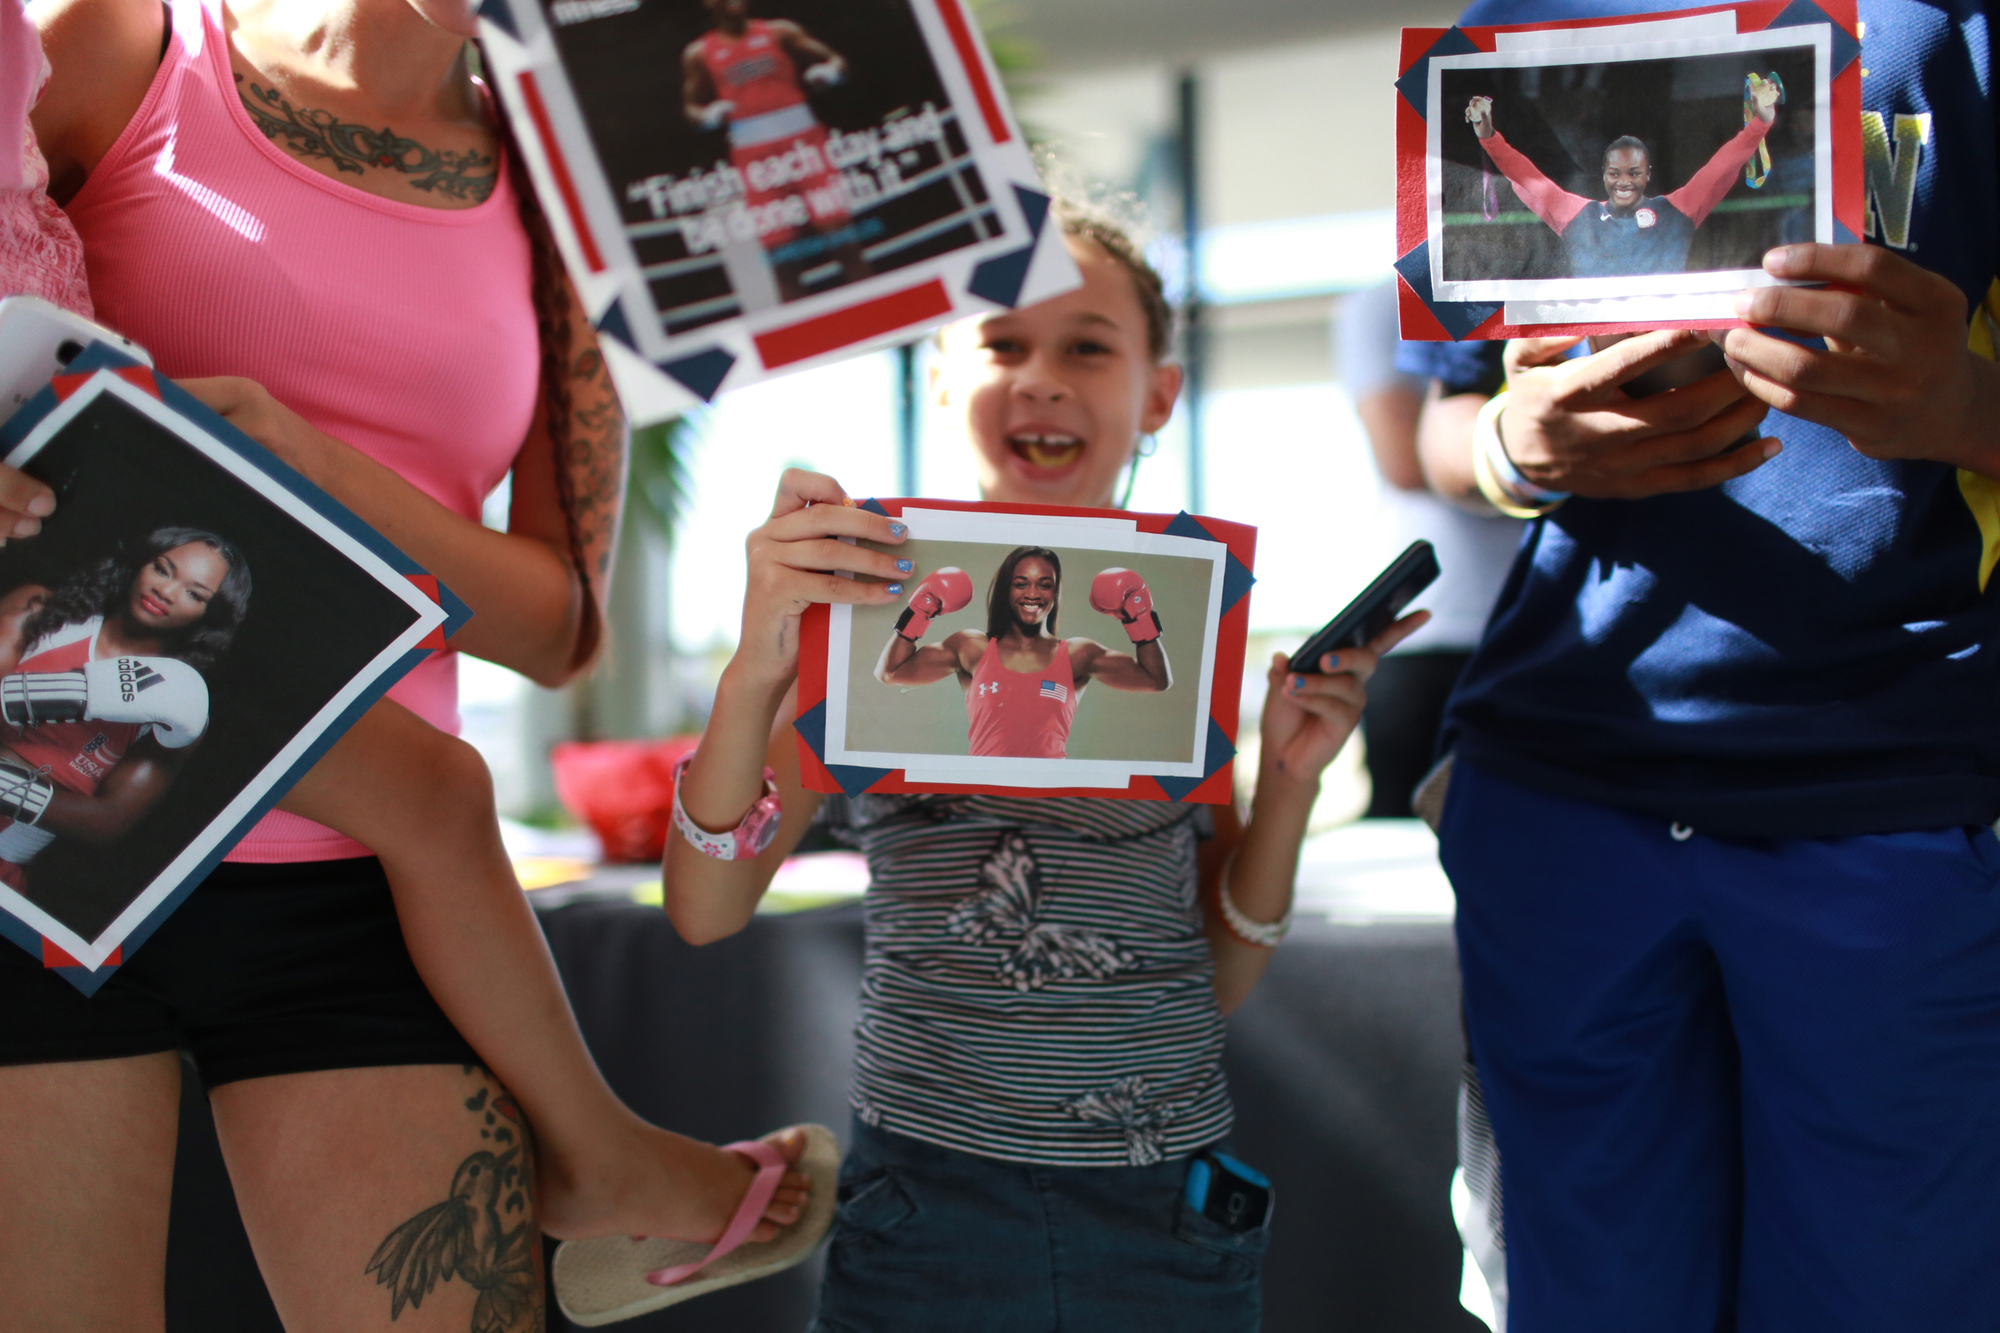 Alanah Jankowiak, 7, of Flint, Mich., holds a photo of Olympic gold medalist Claressa Shields with her family members while waiting to greet her at Bishop International Airport in Flint on Tuesday, Aug. 23, 2016, as she returns home from the Olympics in Rio de Janeiro.